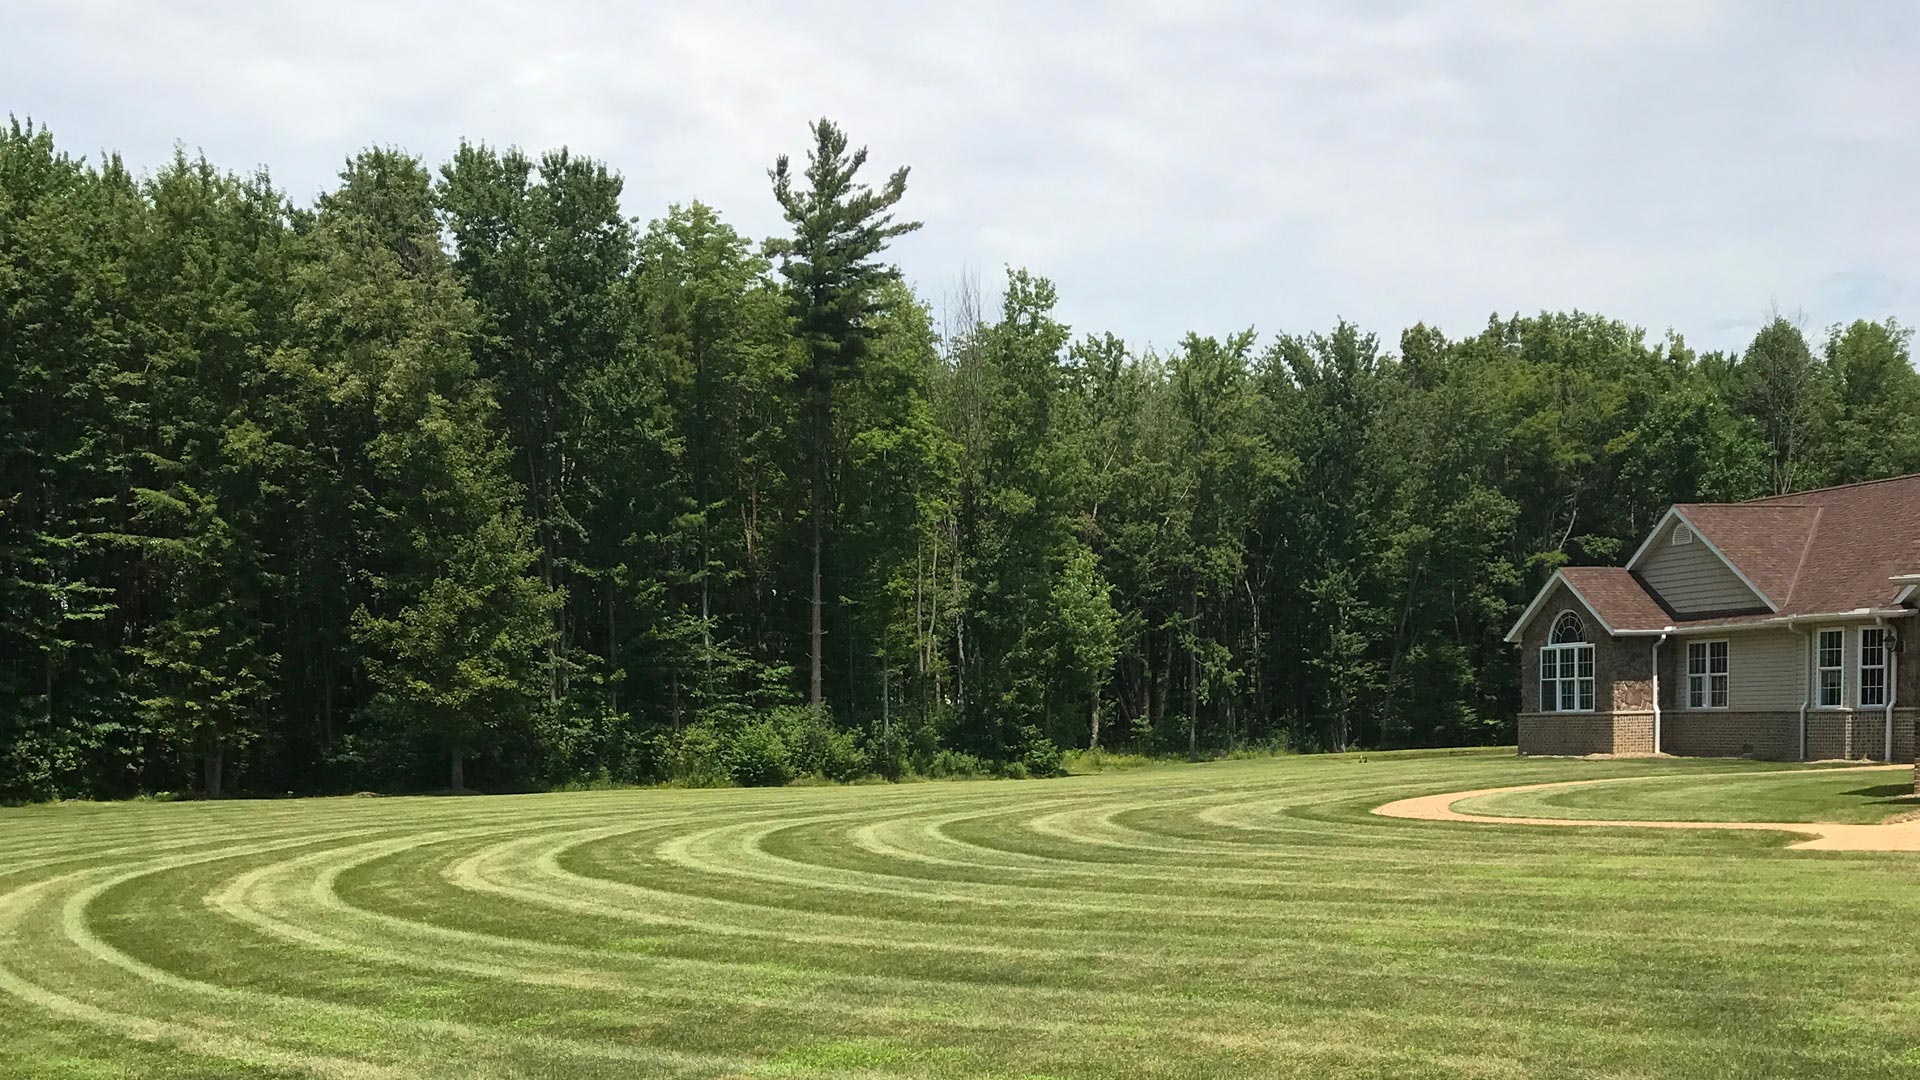 Professionally mowed lawn with stripes at a large property in Ashtabula, OH.